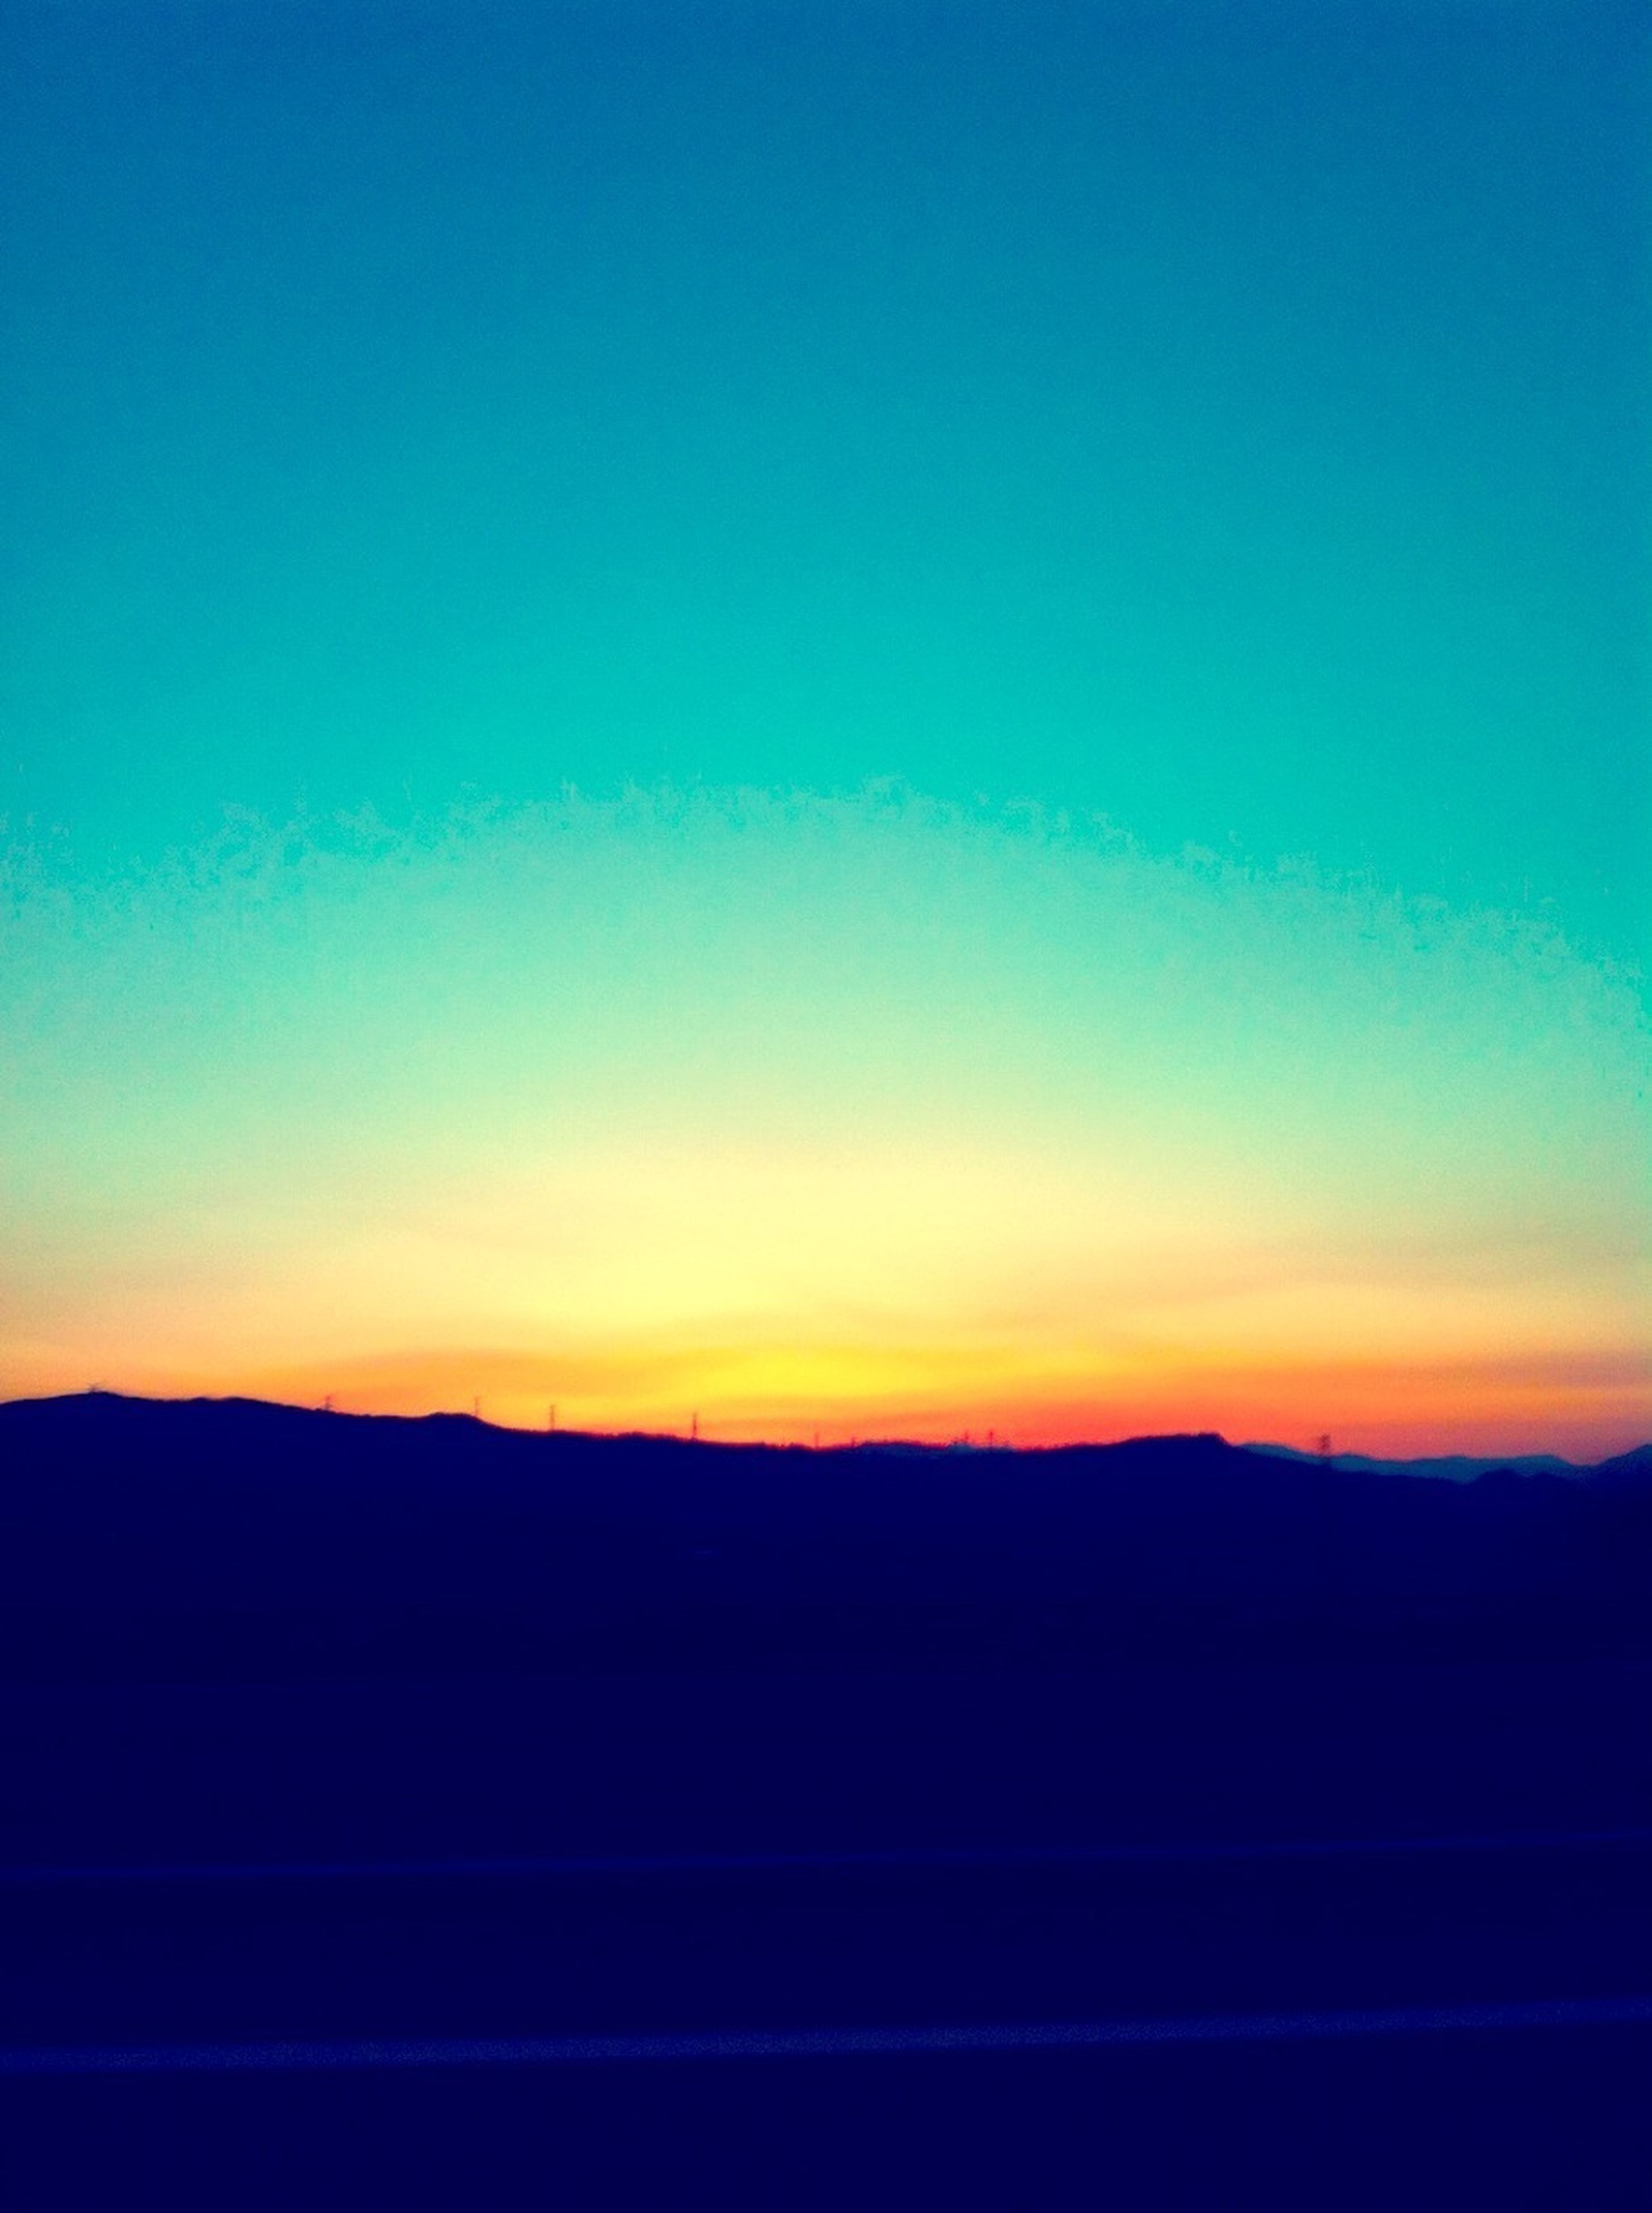 copy space, sunset, silhouette, scenics, tranquil scene, tranquility, blue, clear sky, beauty in nature, mountain, nature, idyllic, orange color, dusk, mountain range, landscape, sky, outdoors, majestic, no people